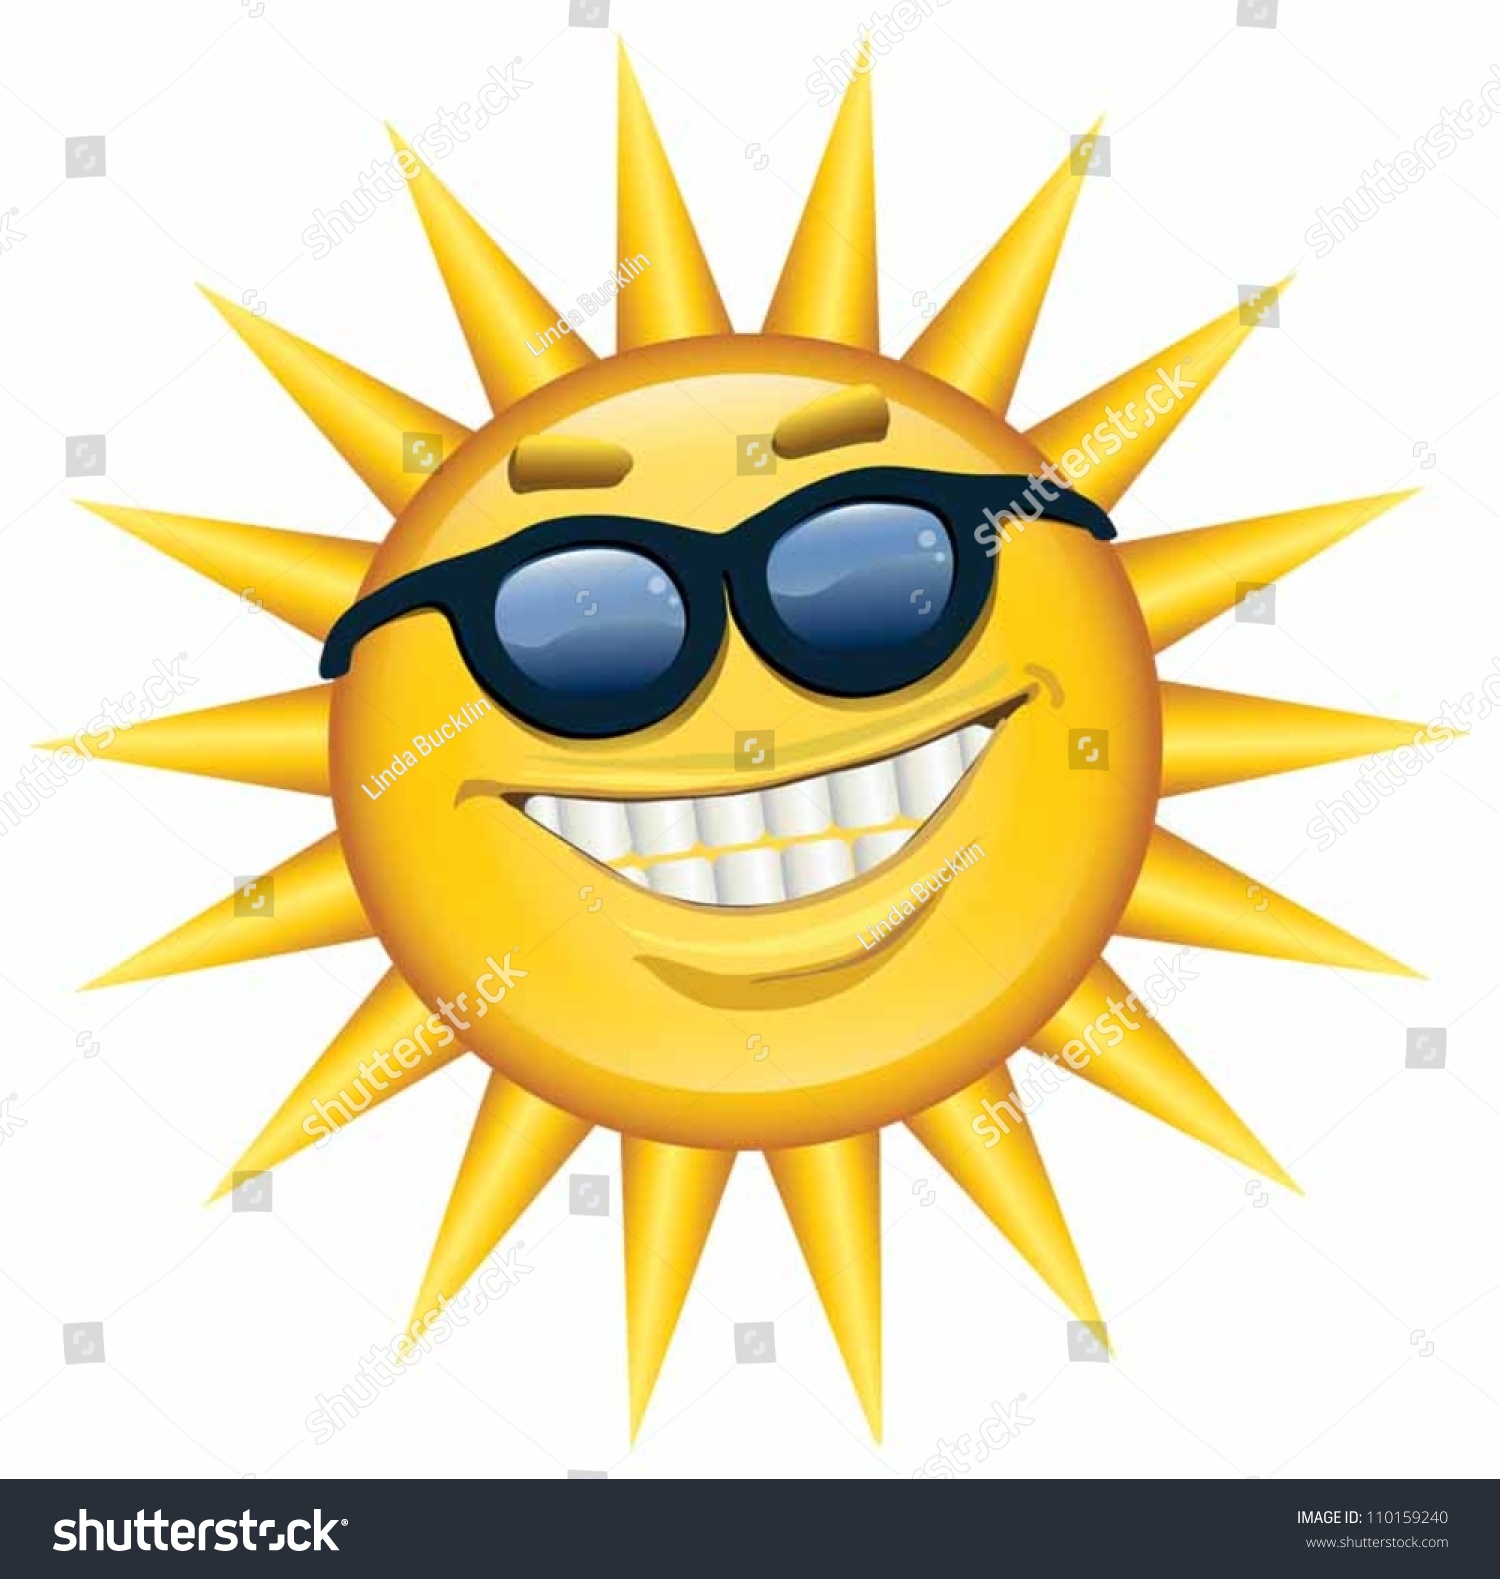 Smiling sun images - A Happy Cheerful Smiling Sun Wearing Sunglasses